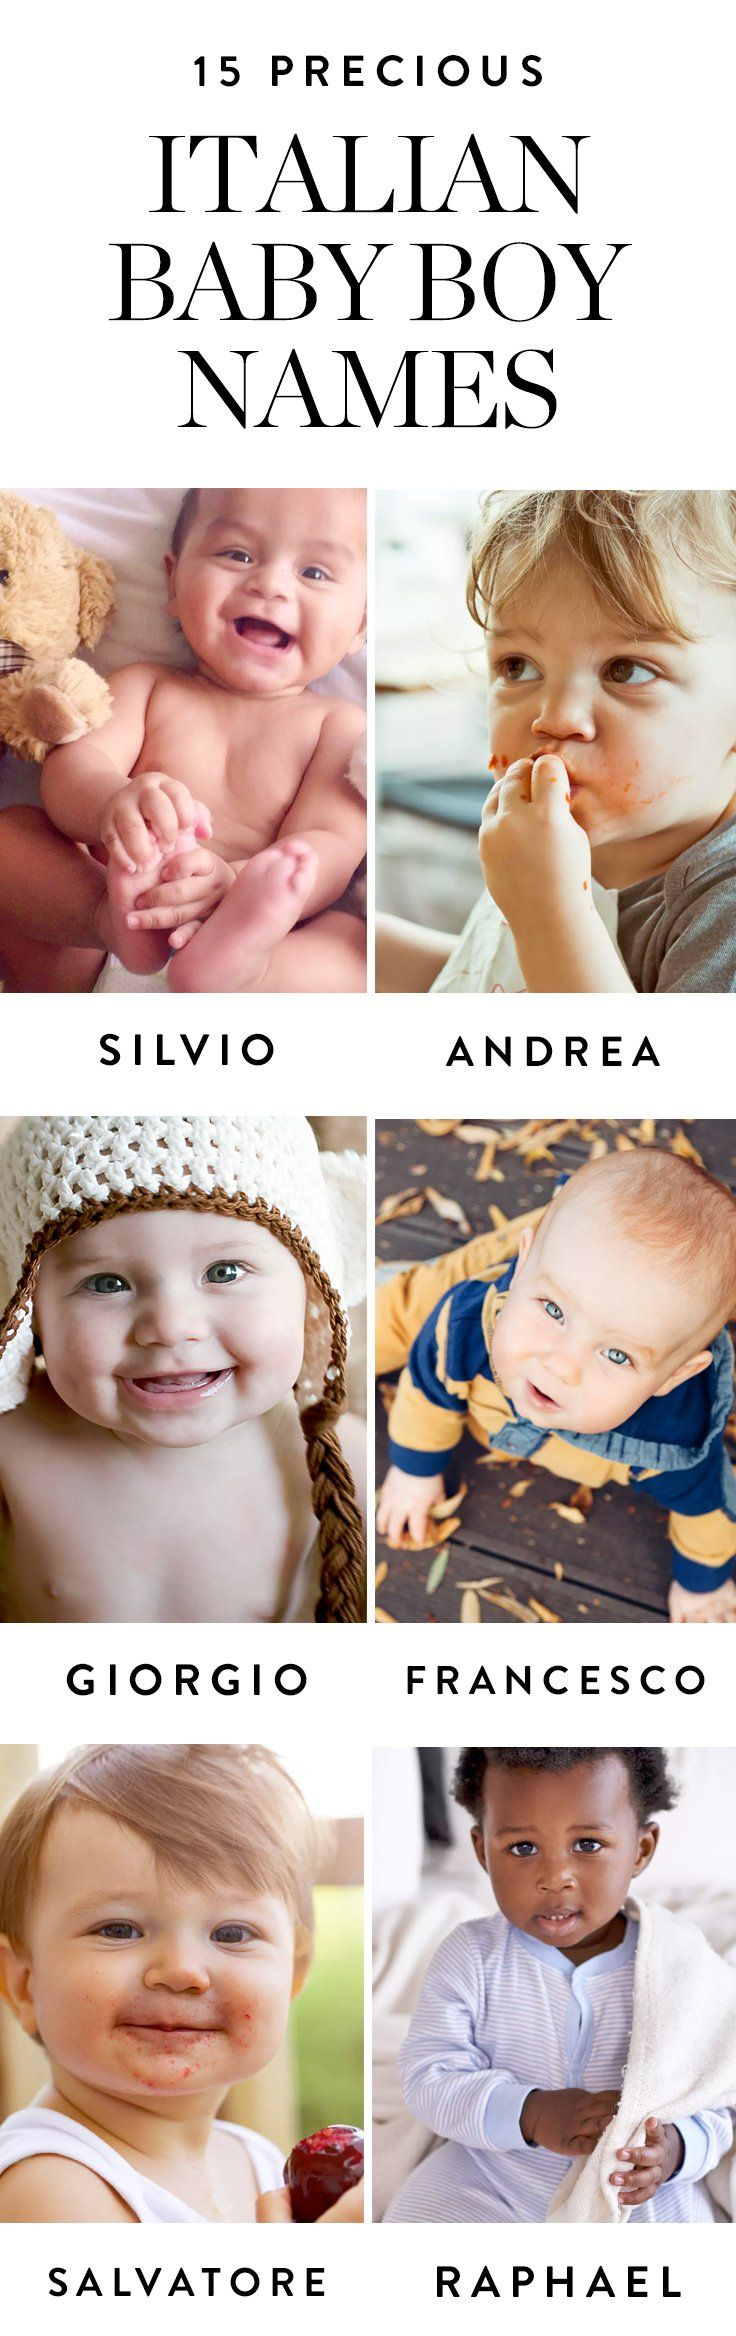 Here are 15 of our favorite Italian baby boy names that are perfect for your little bambino.